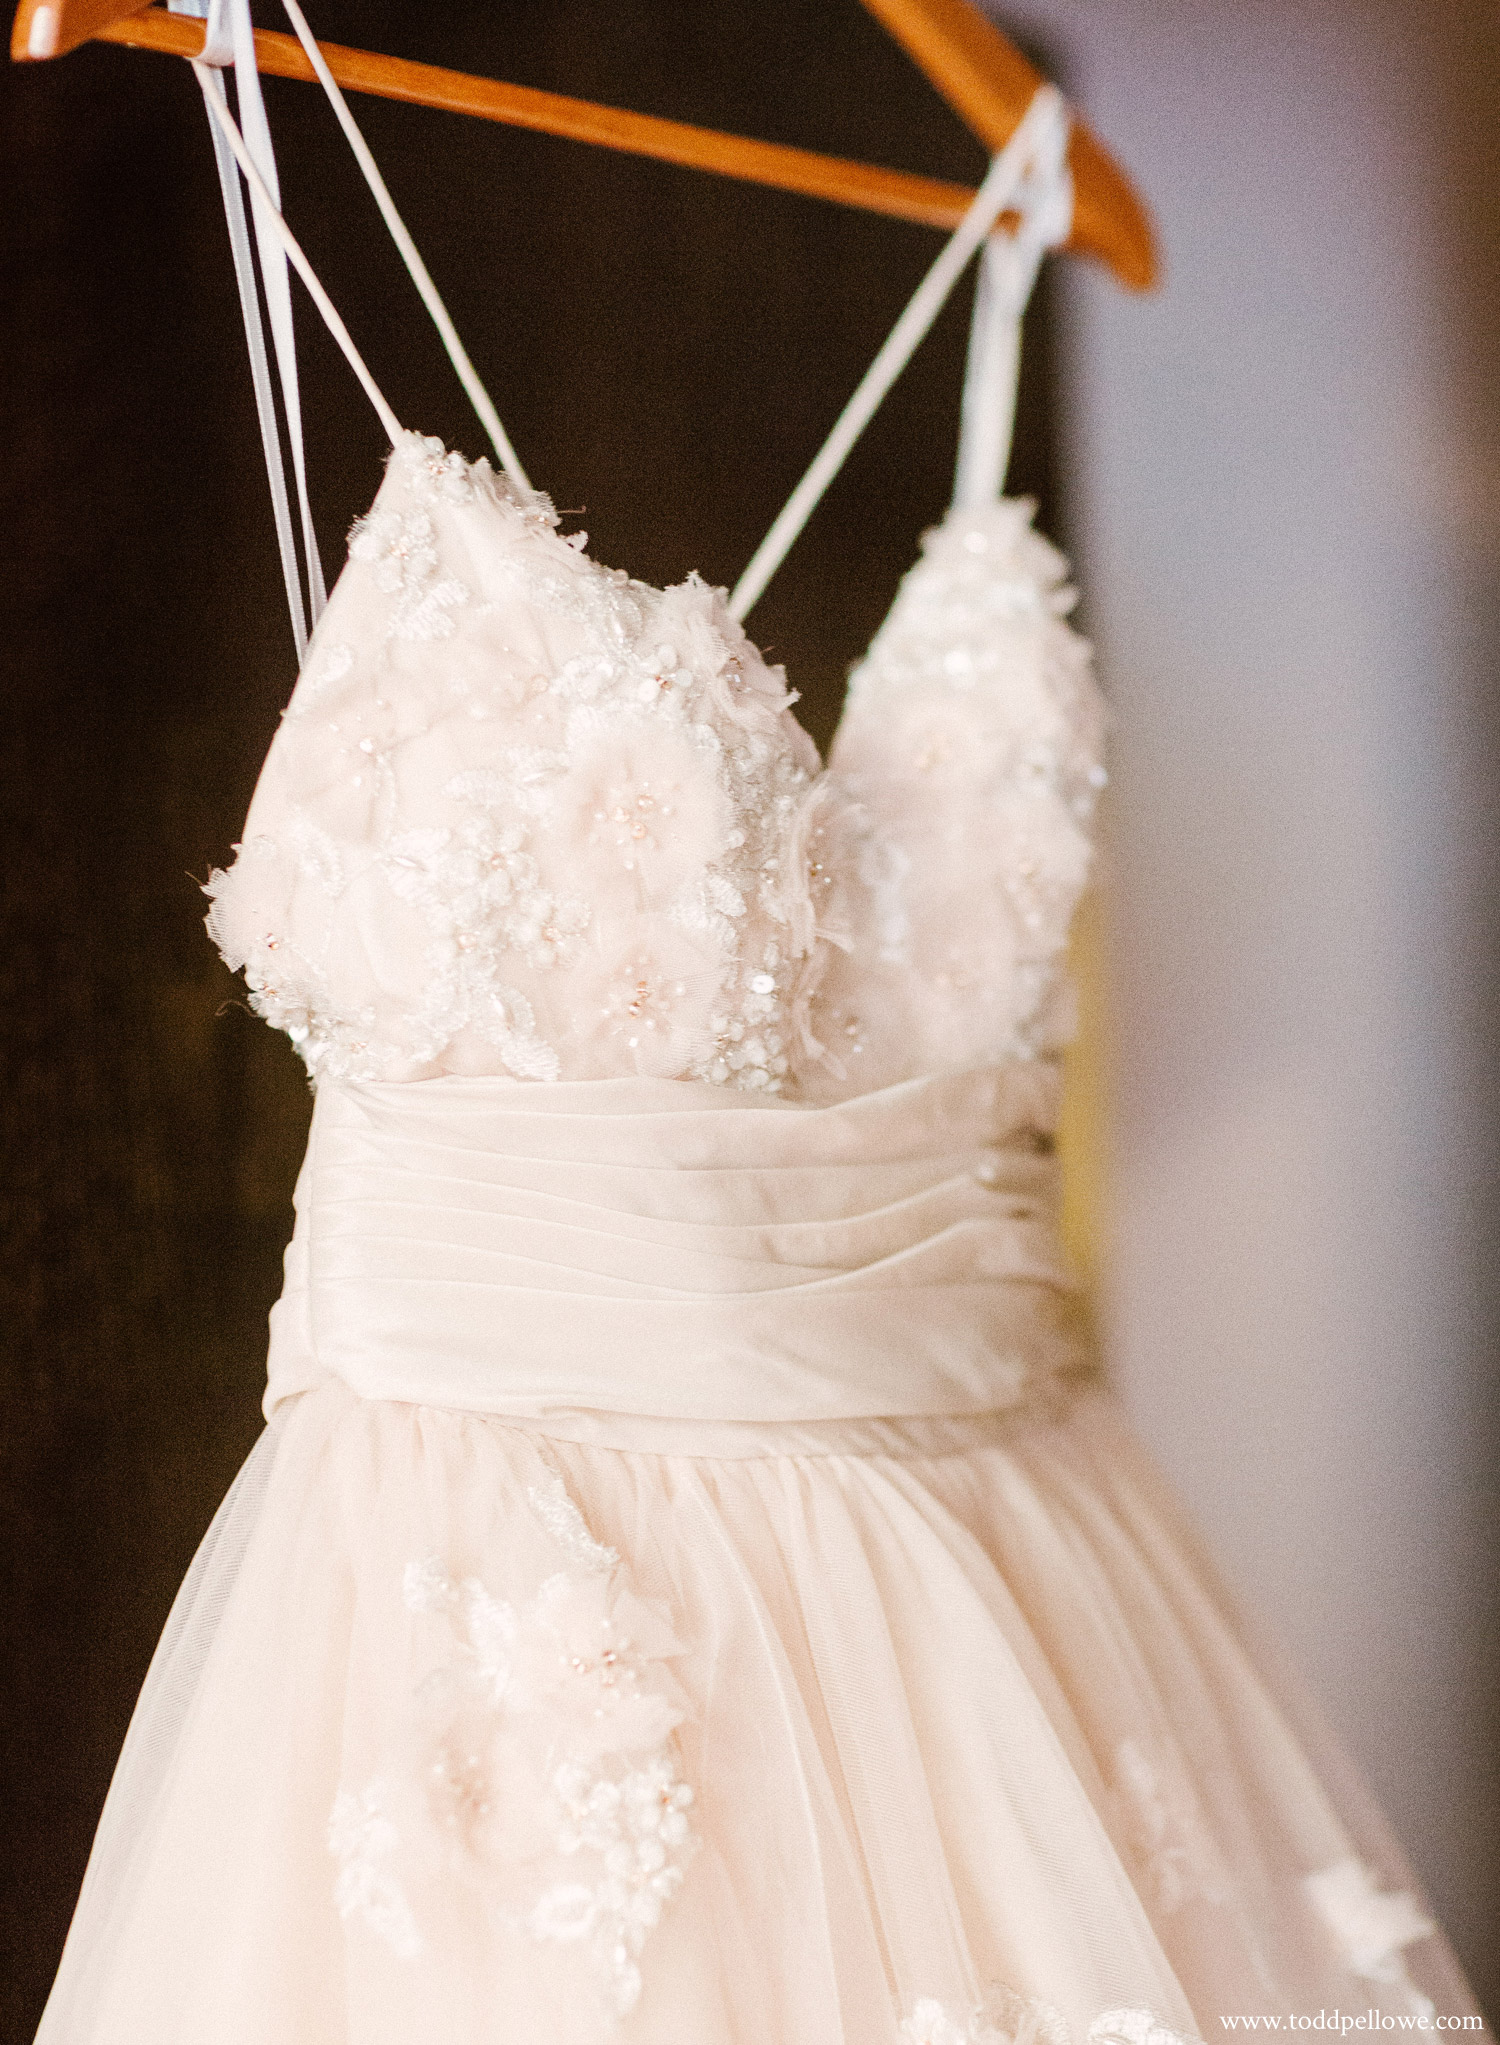 Stunning Louisville wedding dress